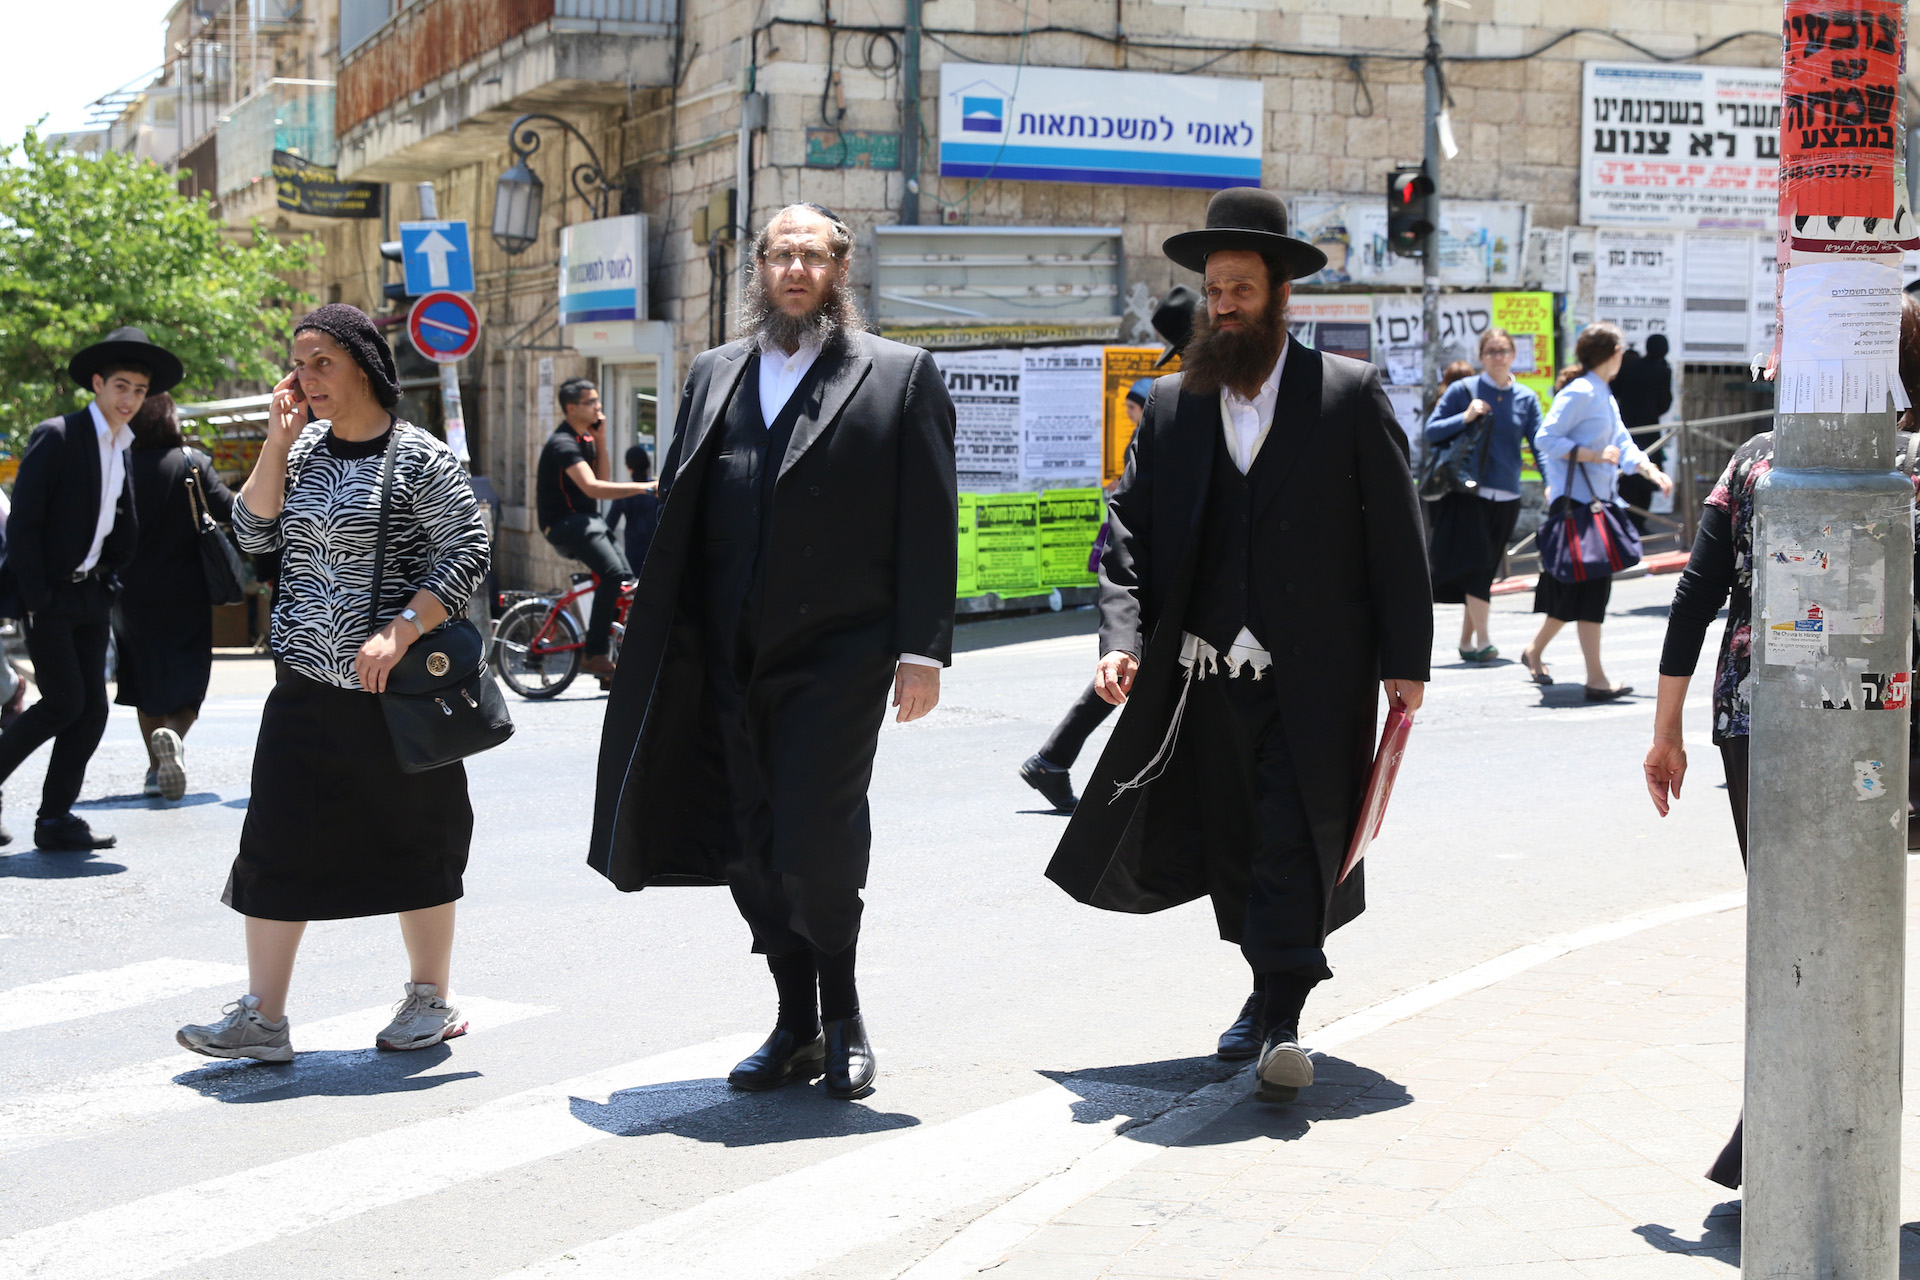 May 30th, 2016 Jerusalem, Israel A busy crosswalk in Mea Sharim in Jerusalem shows the maority Haredi make-up of the neighborhood. 05/31/2016 Photo by Christina Thornell